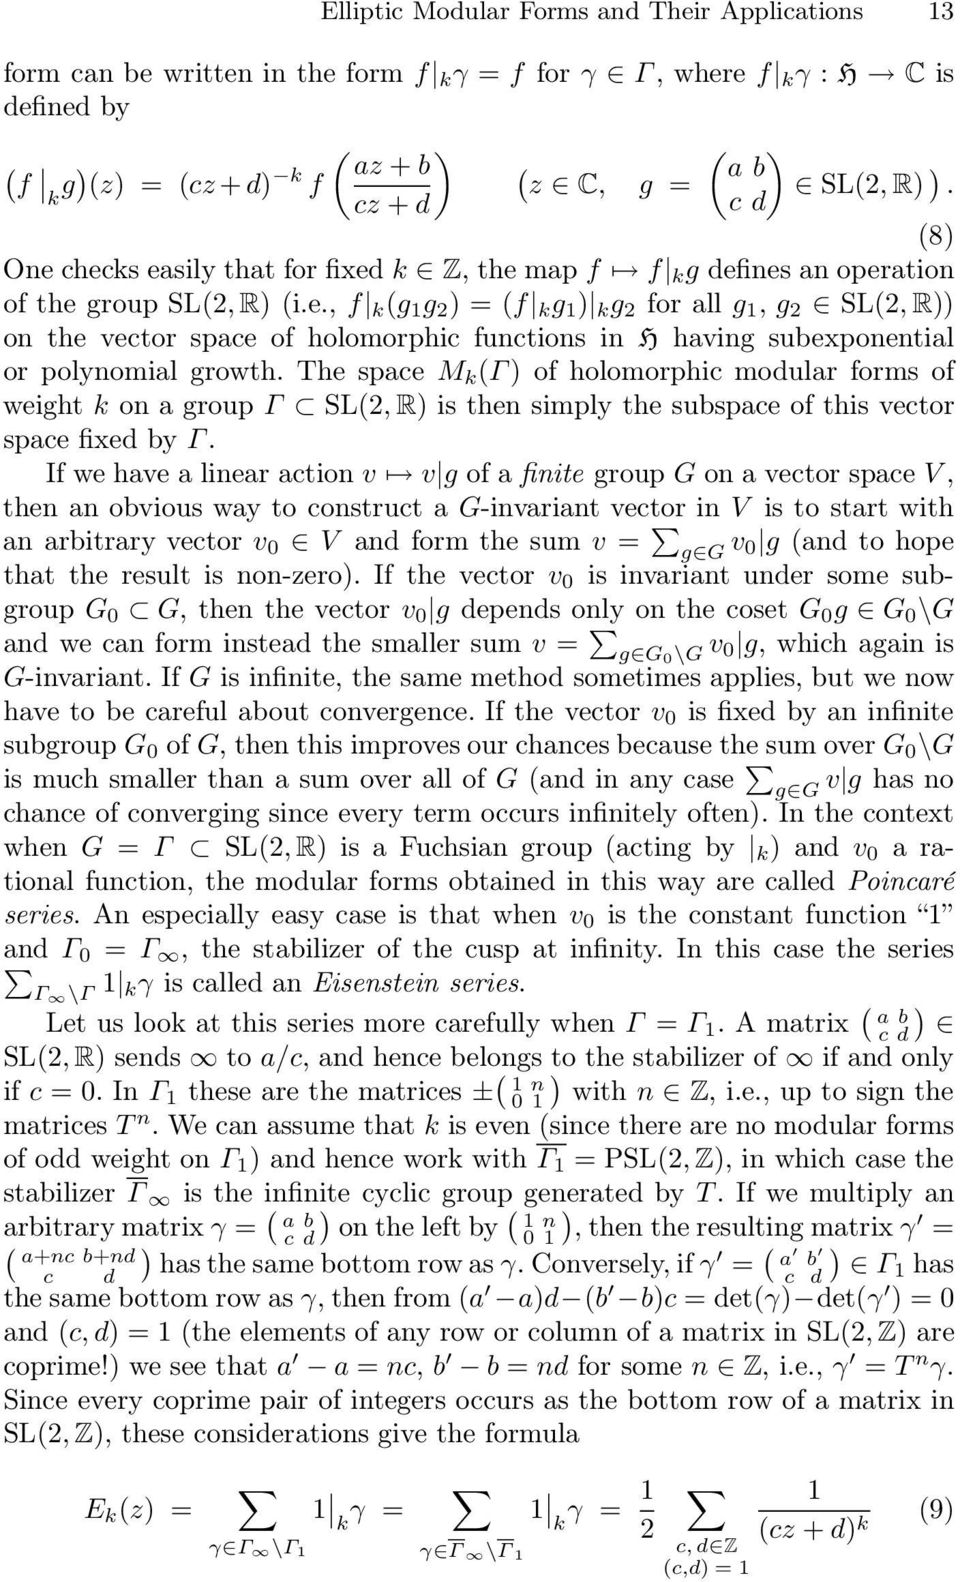 The space M k (Γ ) of holomorphic modular forms of weight k on a group Γ SL(2, R) is then simply the subspace of this vector space fixed by Γ.